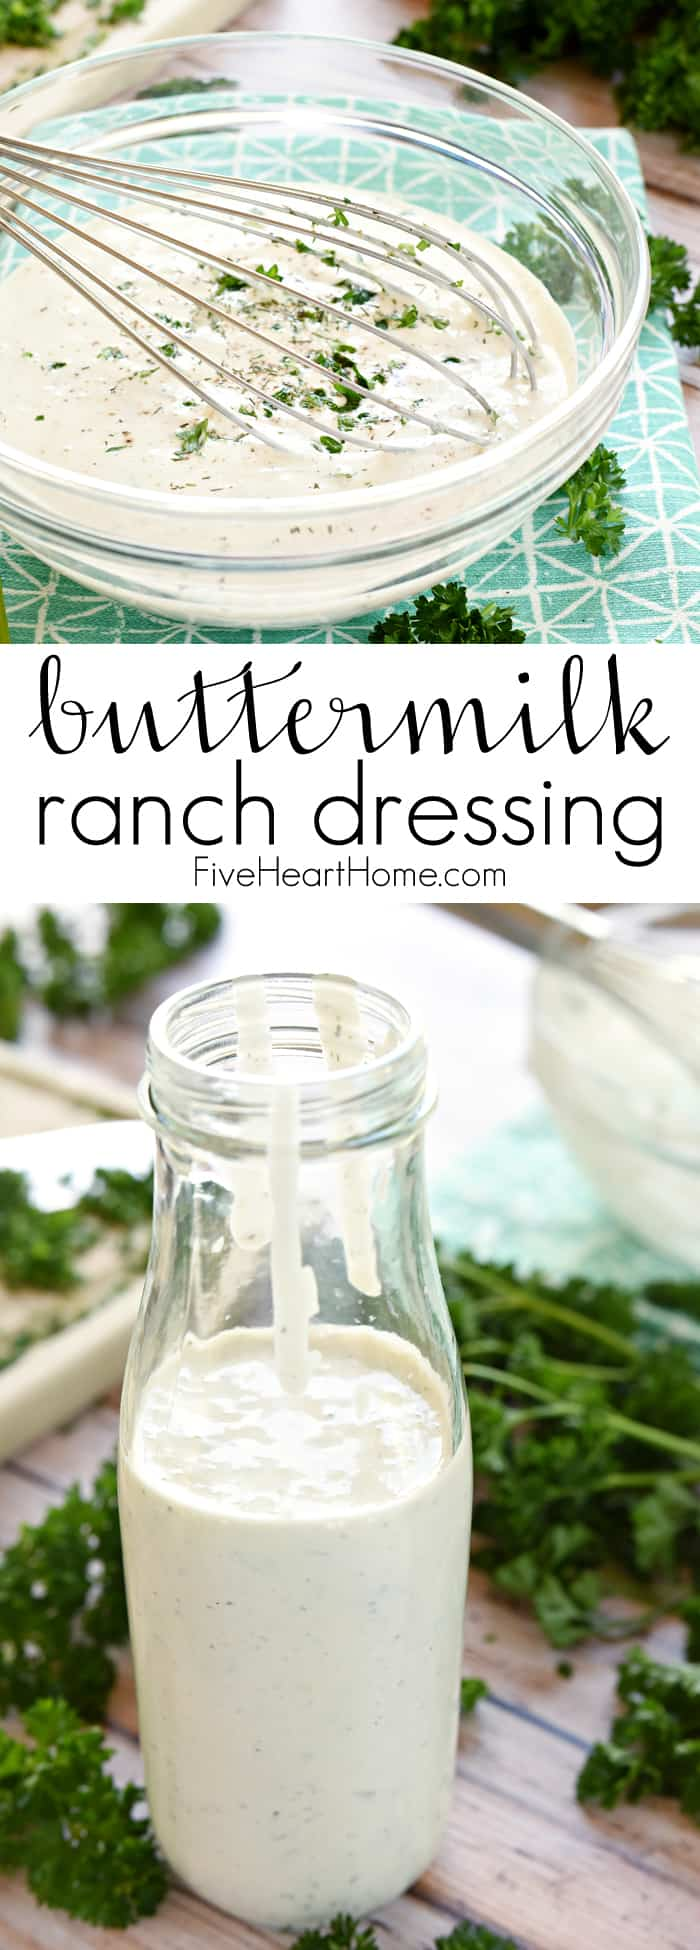 recipe: make buttermilk ranch [13]